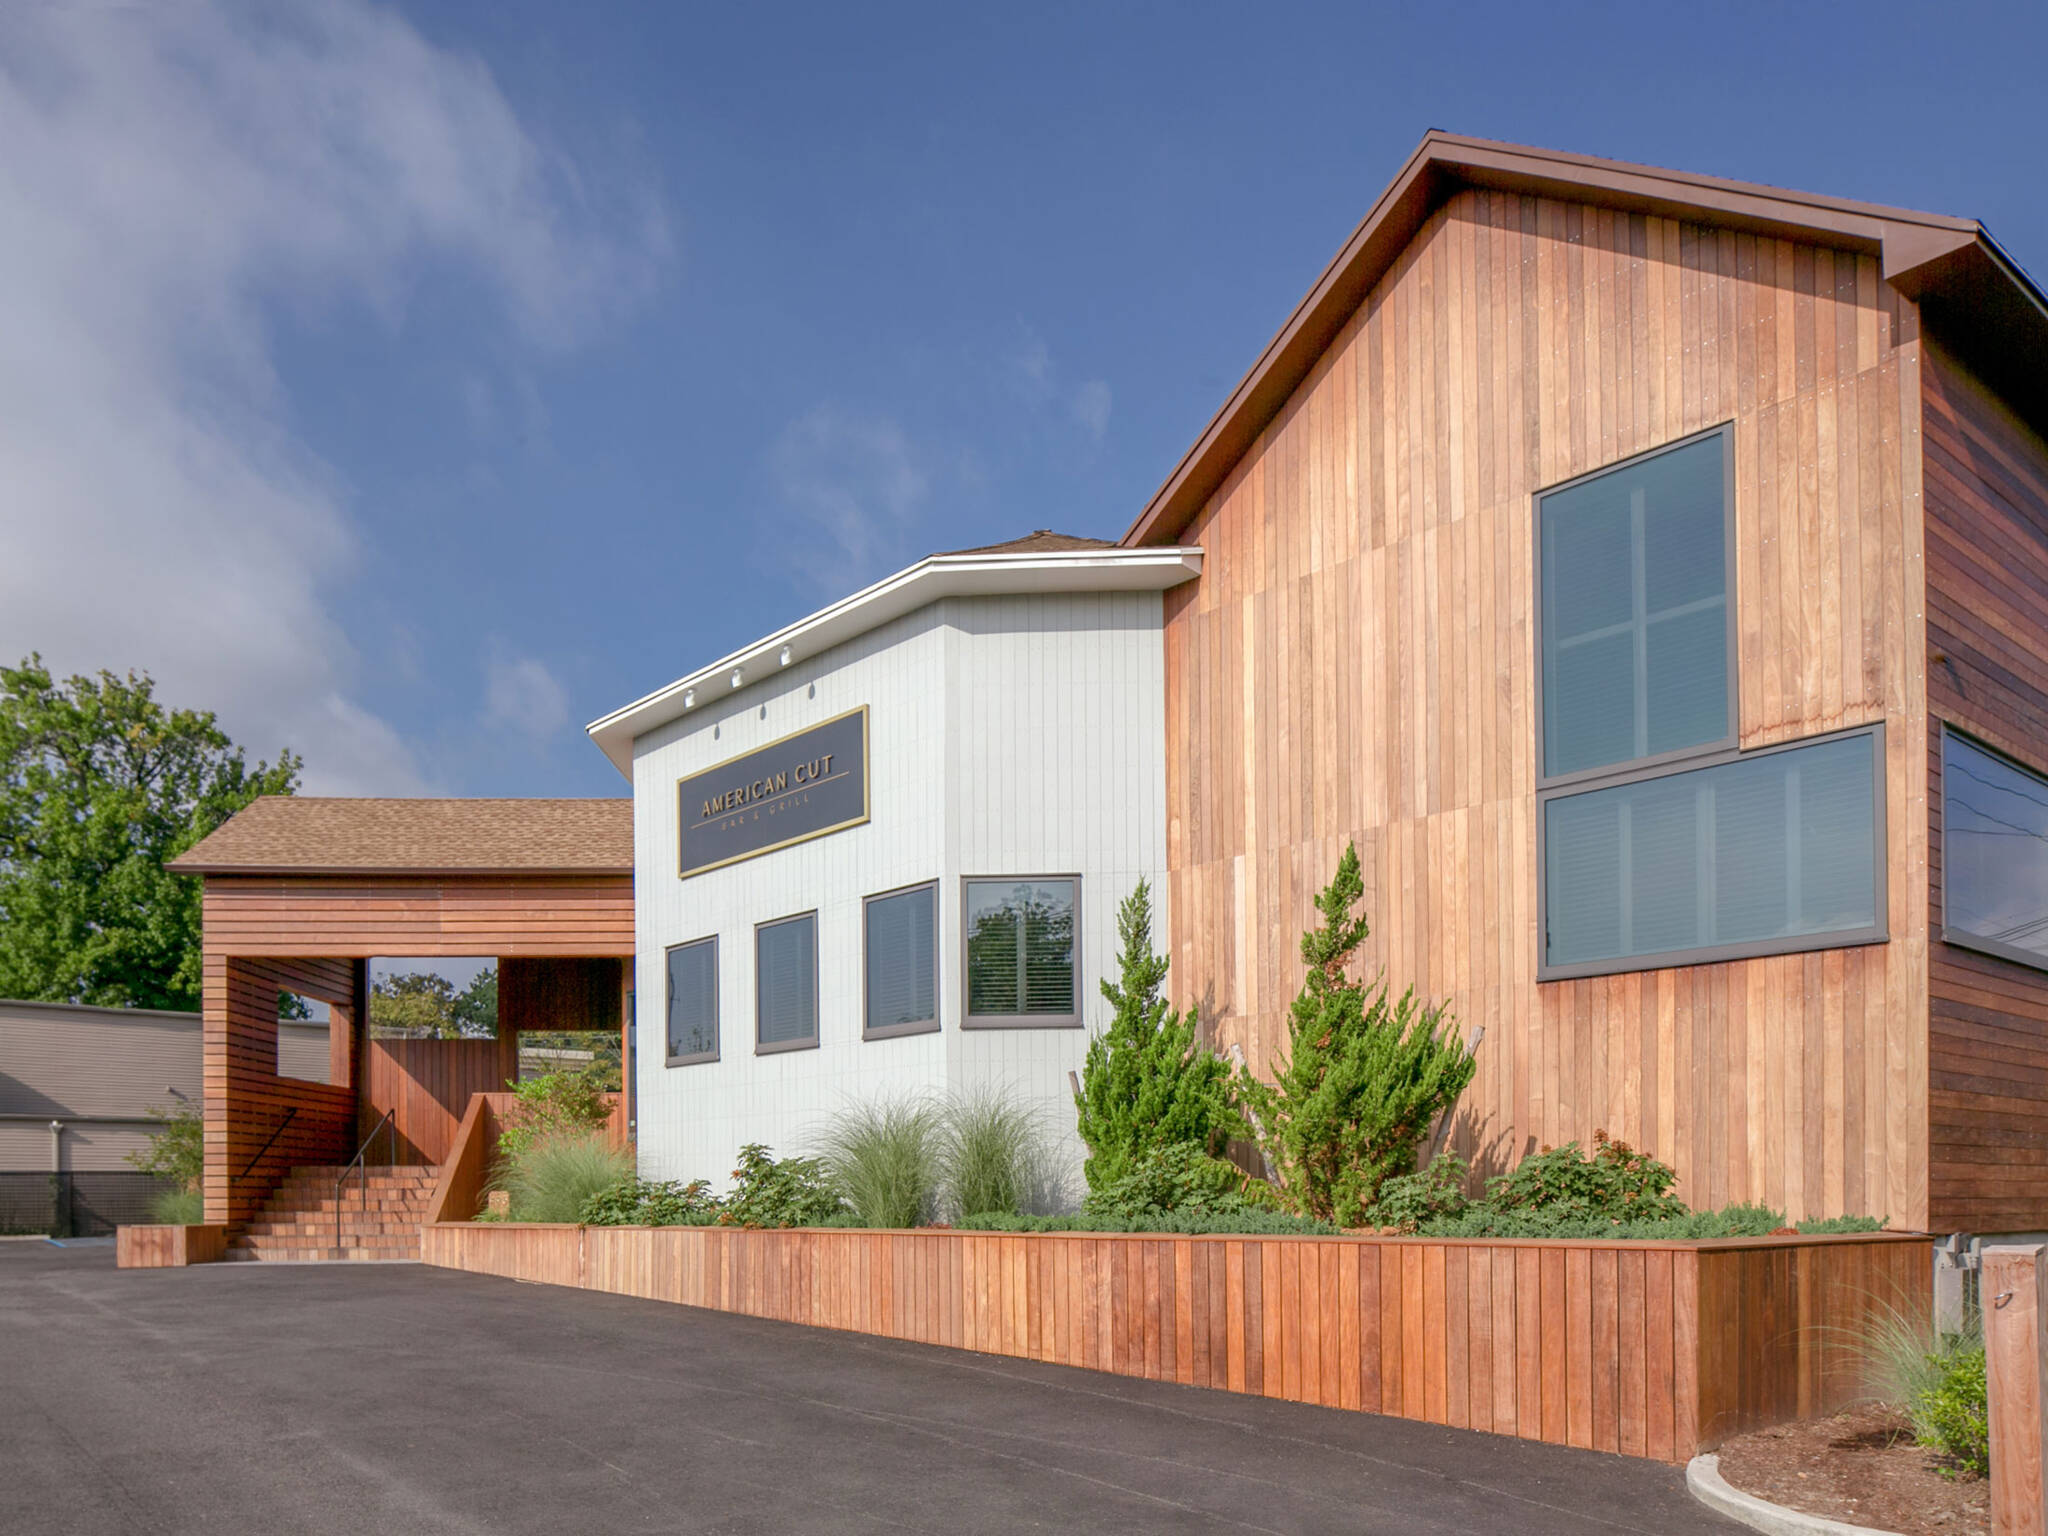 Driveway view of the American Cut Bar & Grill project located at 495 Sylvan Avenue in Englewood Cliffs, New Jersey designed by the architecture studio Danny Forster & Architecture